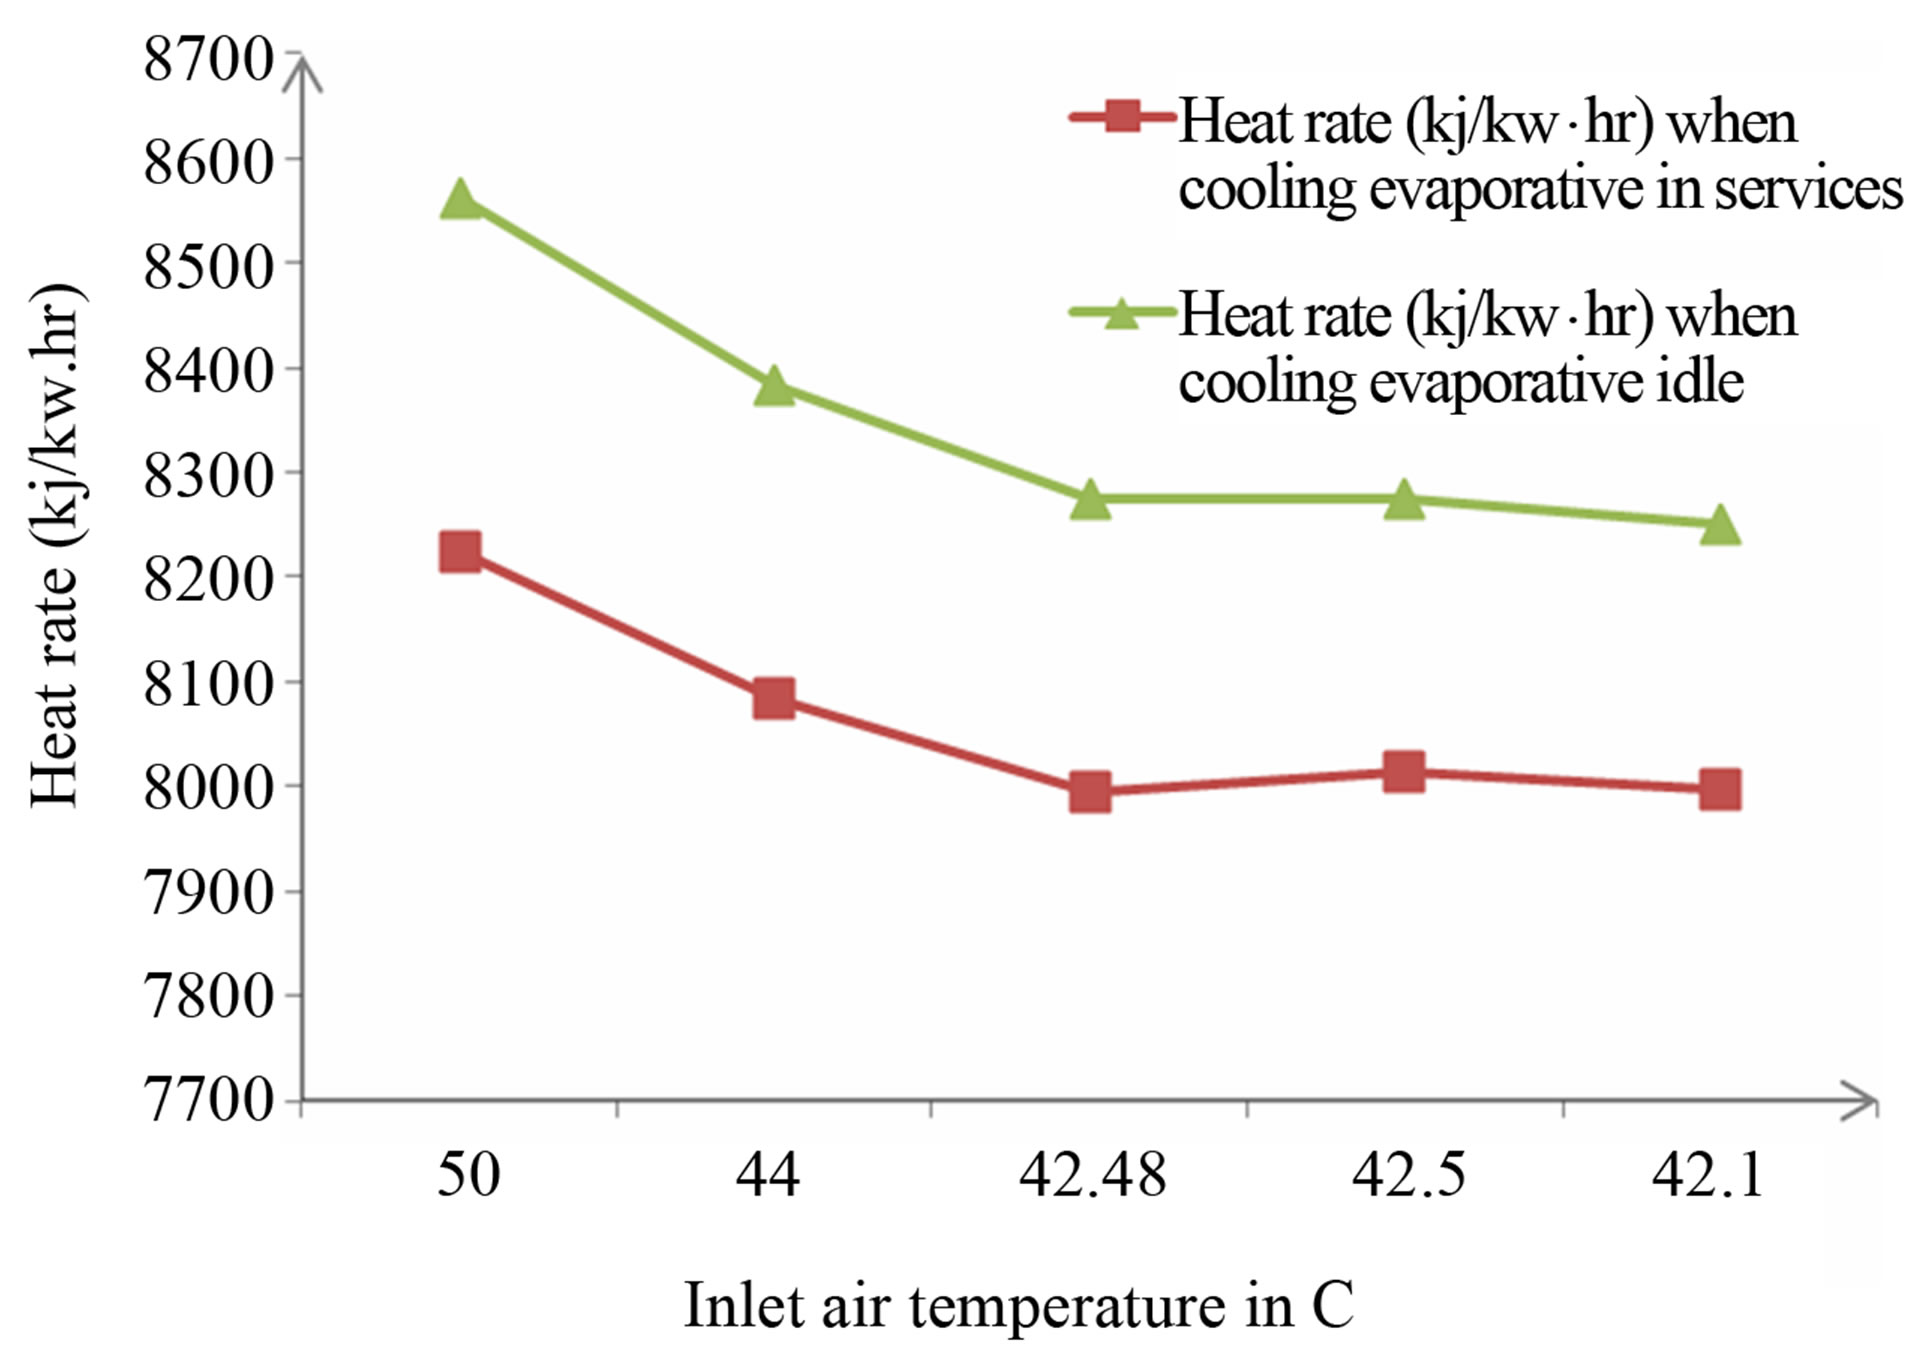 Input Air Tem. On Heat Rate (Kj/Kw·hr) When Cooling Evaporative Idle #963735